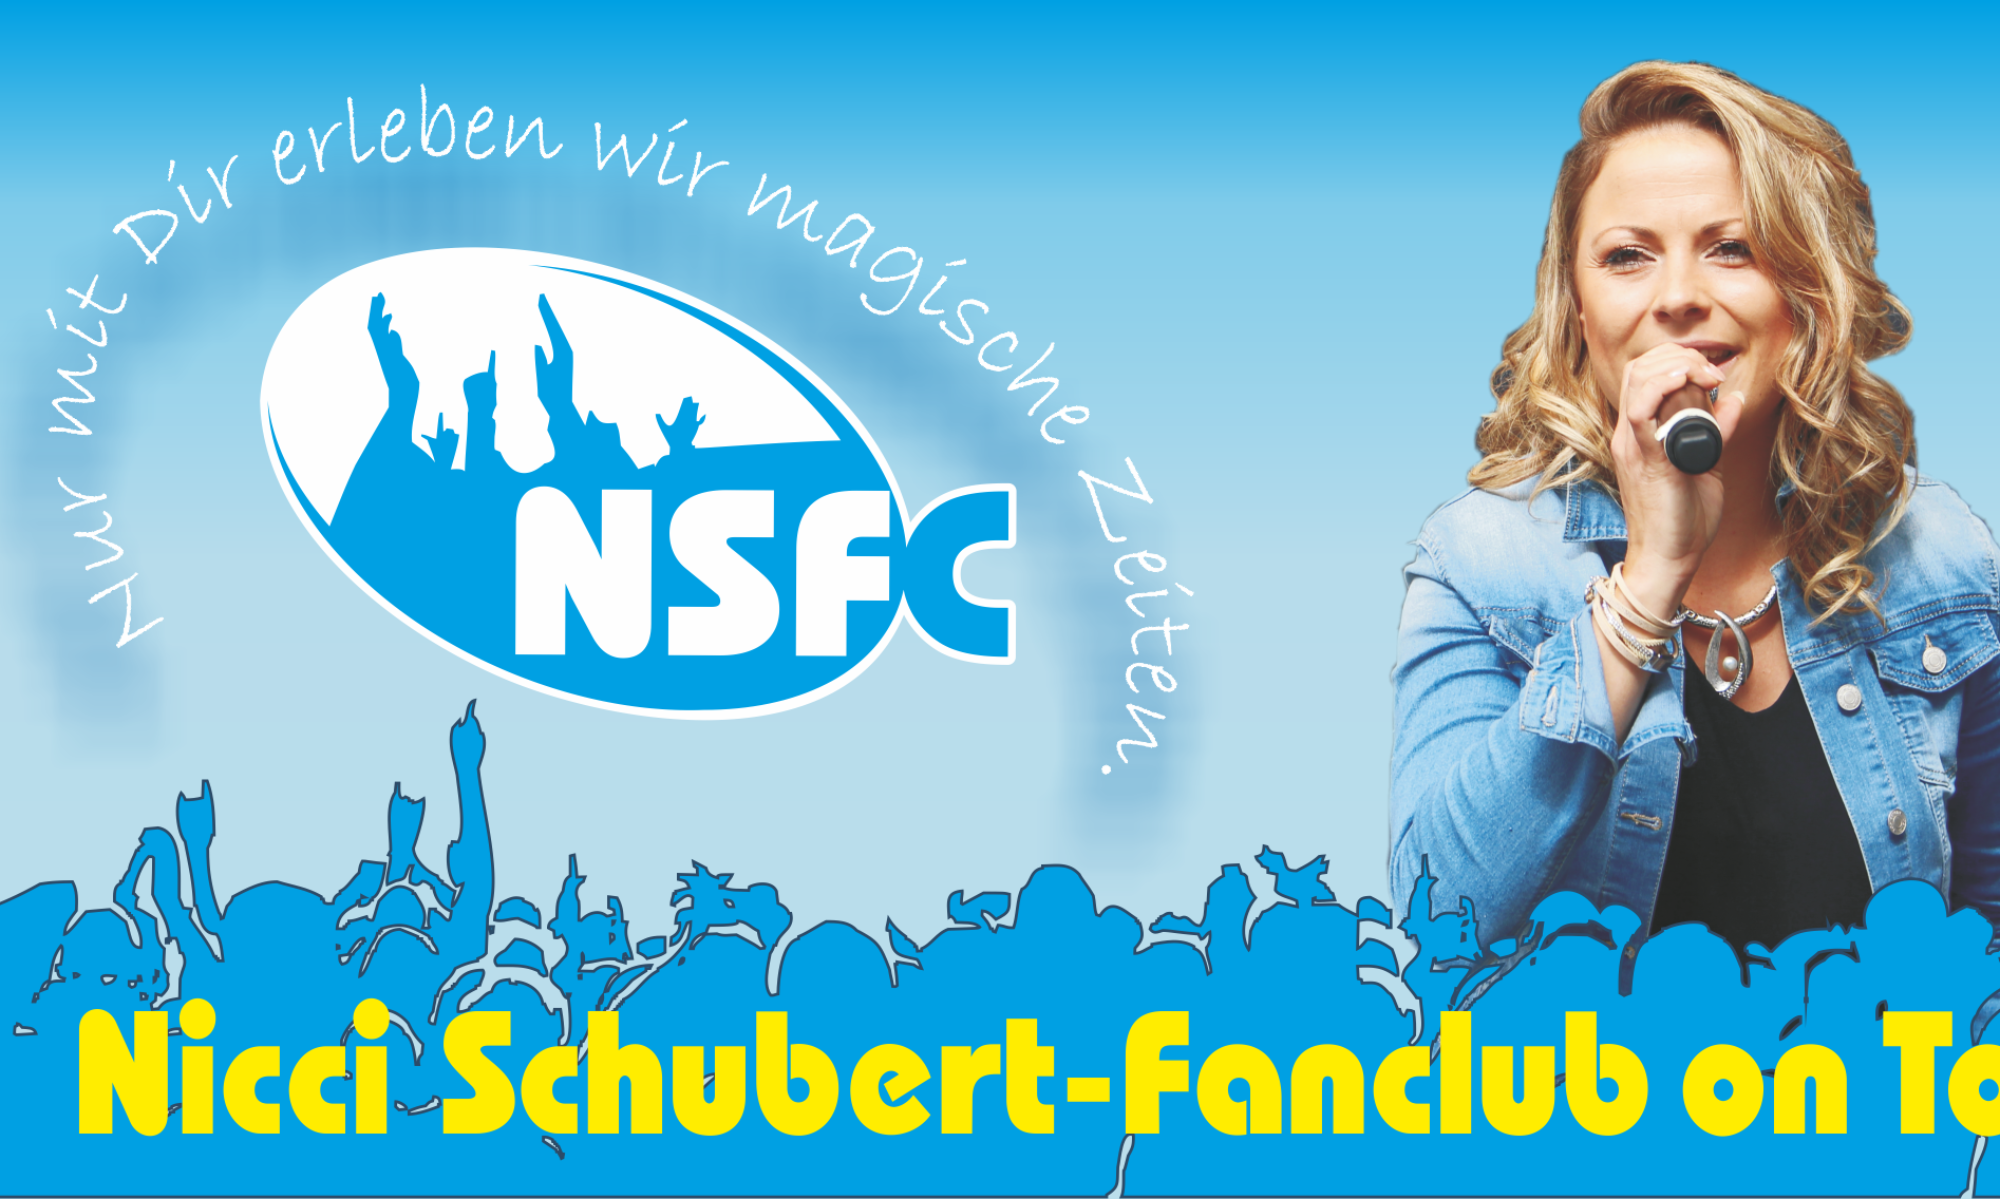 Nicci Schubert Fanclub